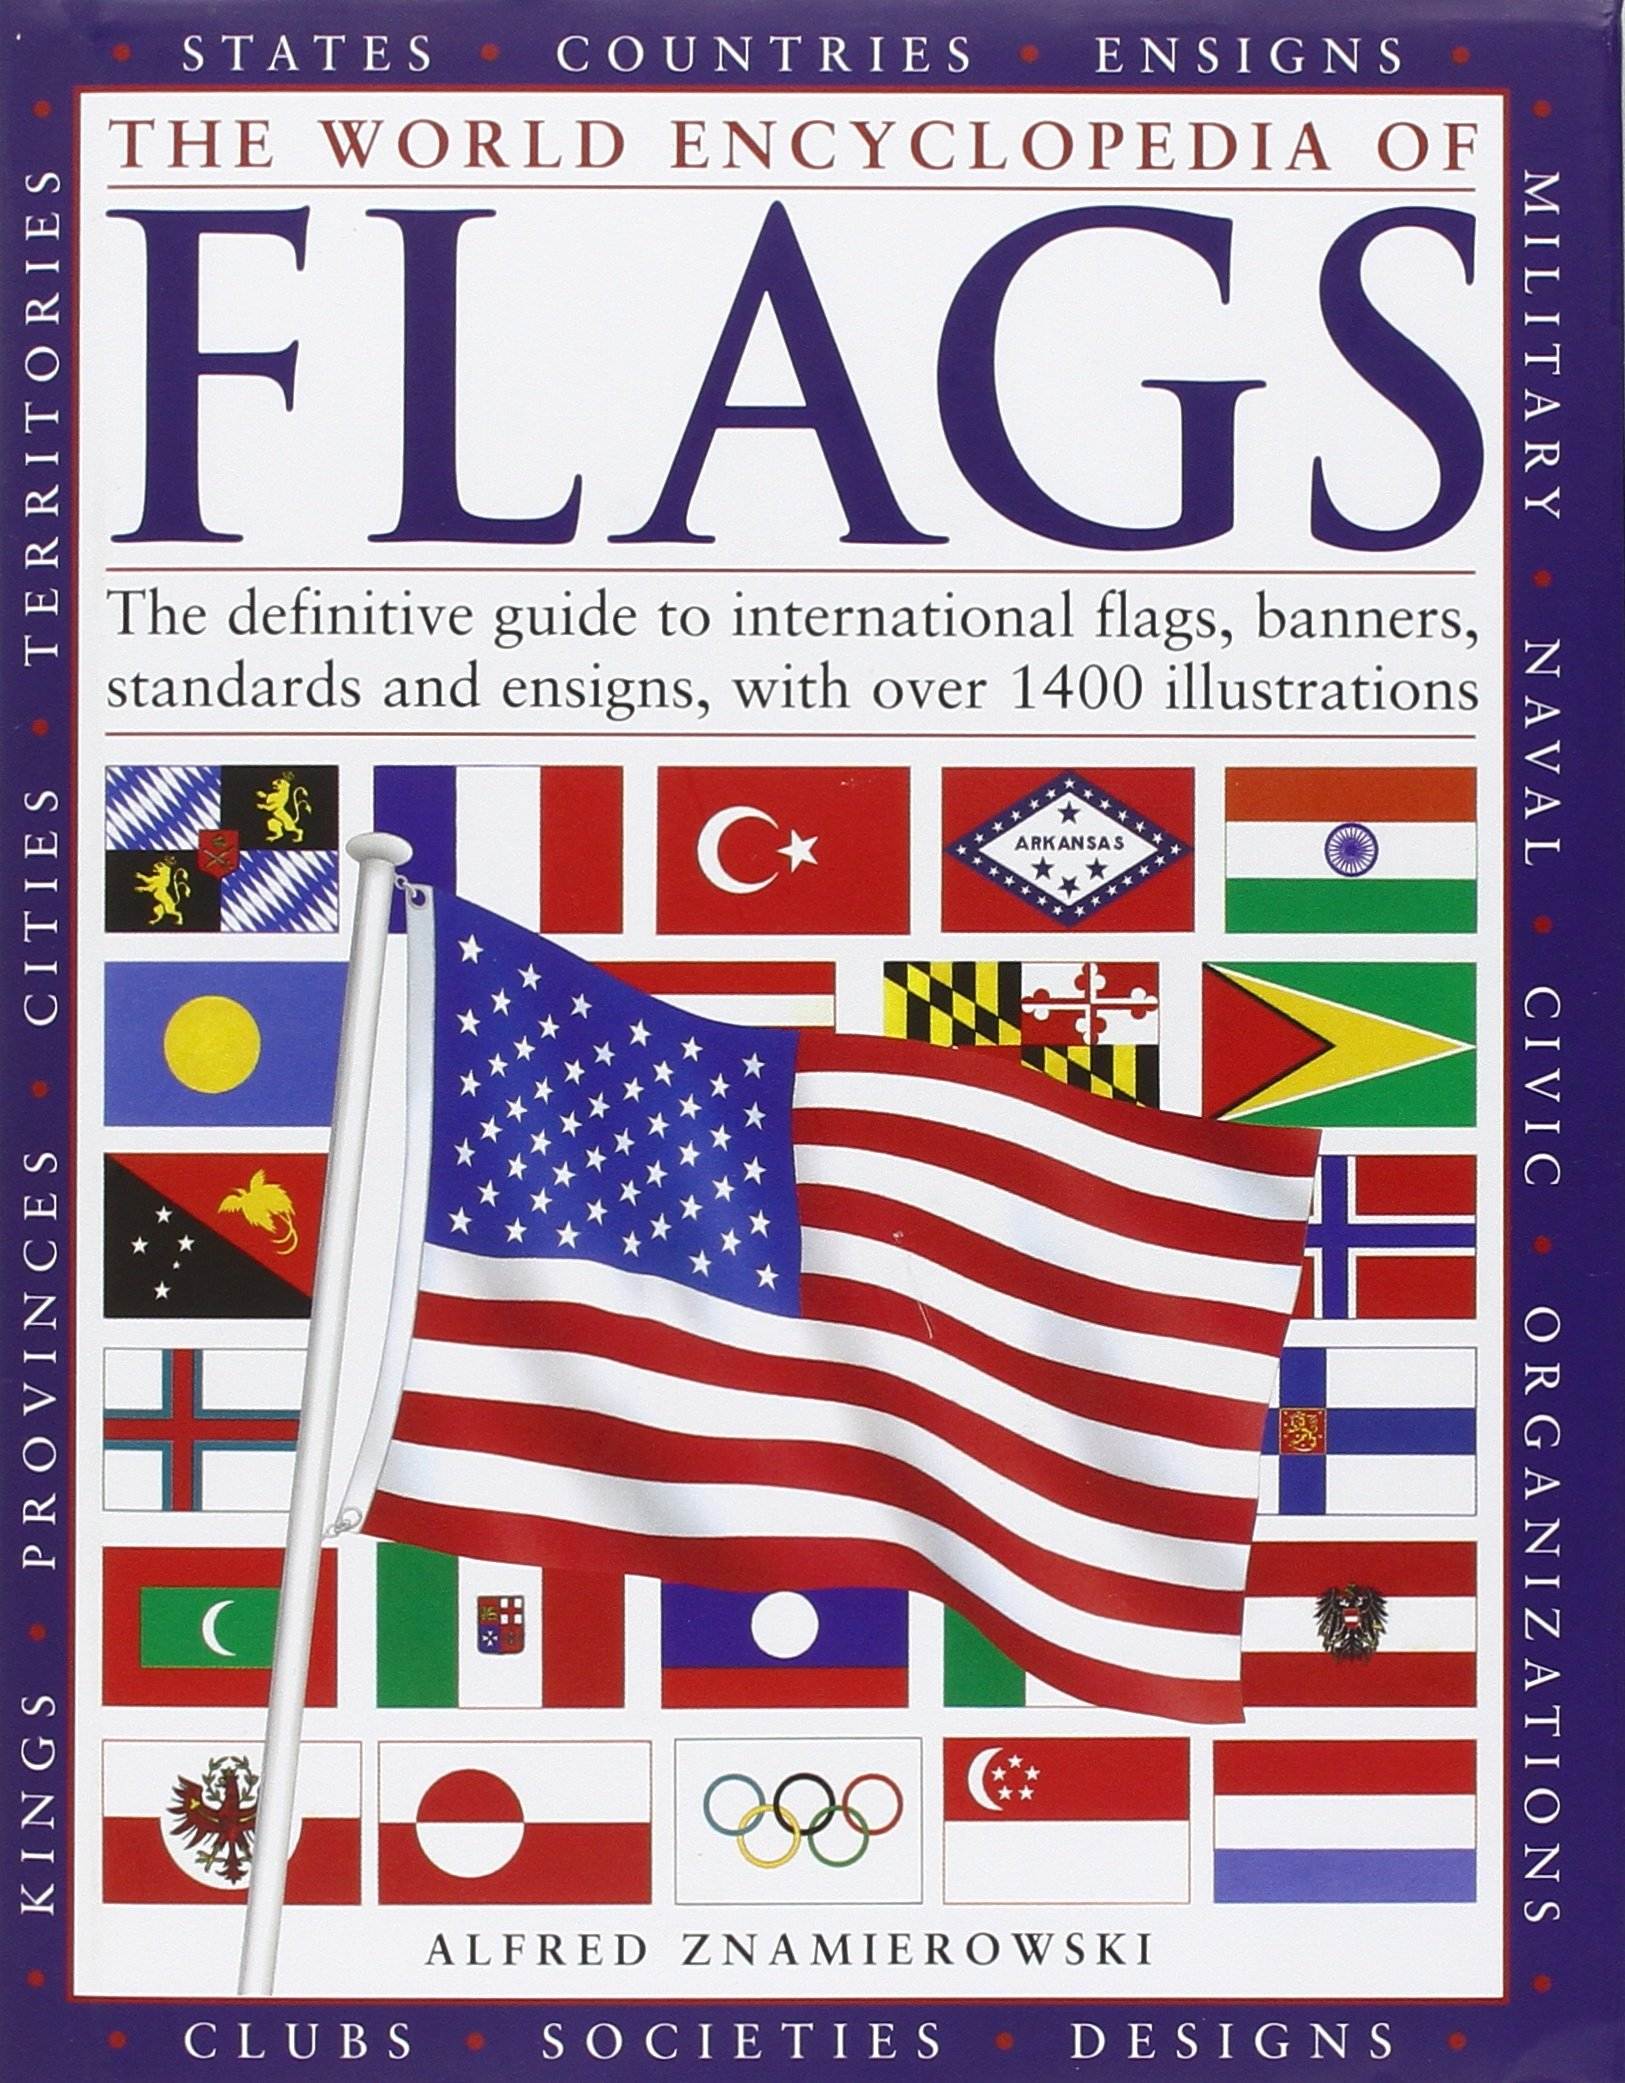 The World Encyclopedia of Flags: The definitive guide to international flags, banners, standards and ensigns, with over 400 illustrations ebook